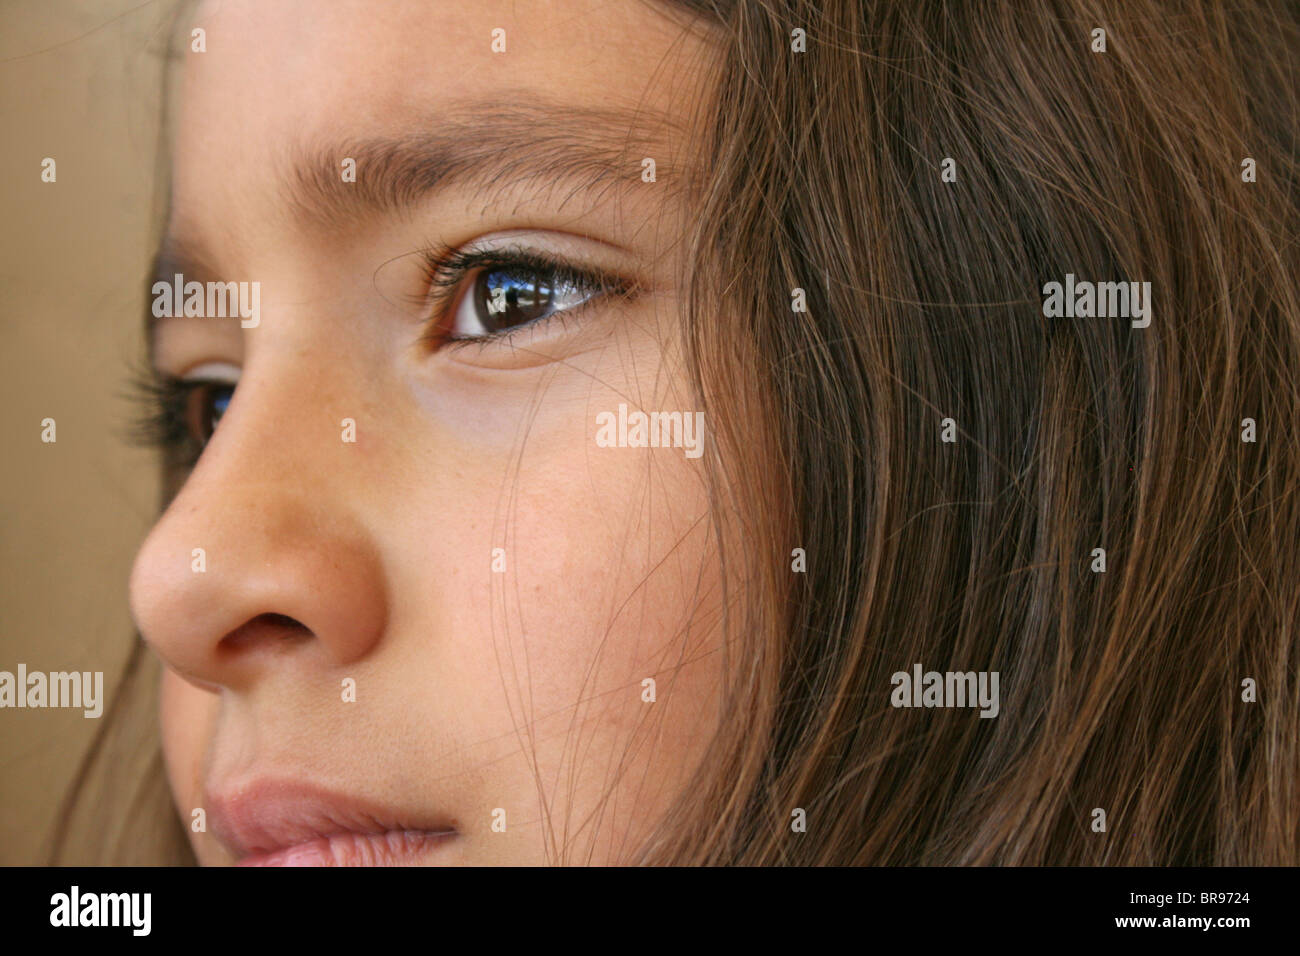 close up of Hispanic girl with worried expression - Stock Image